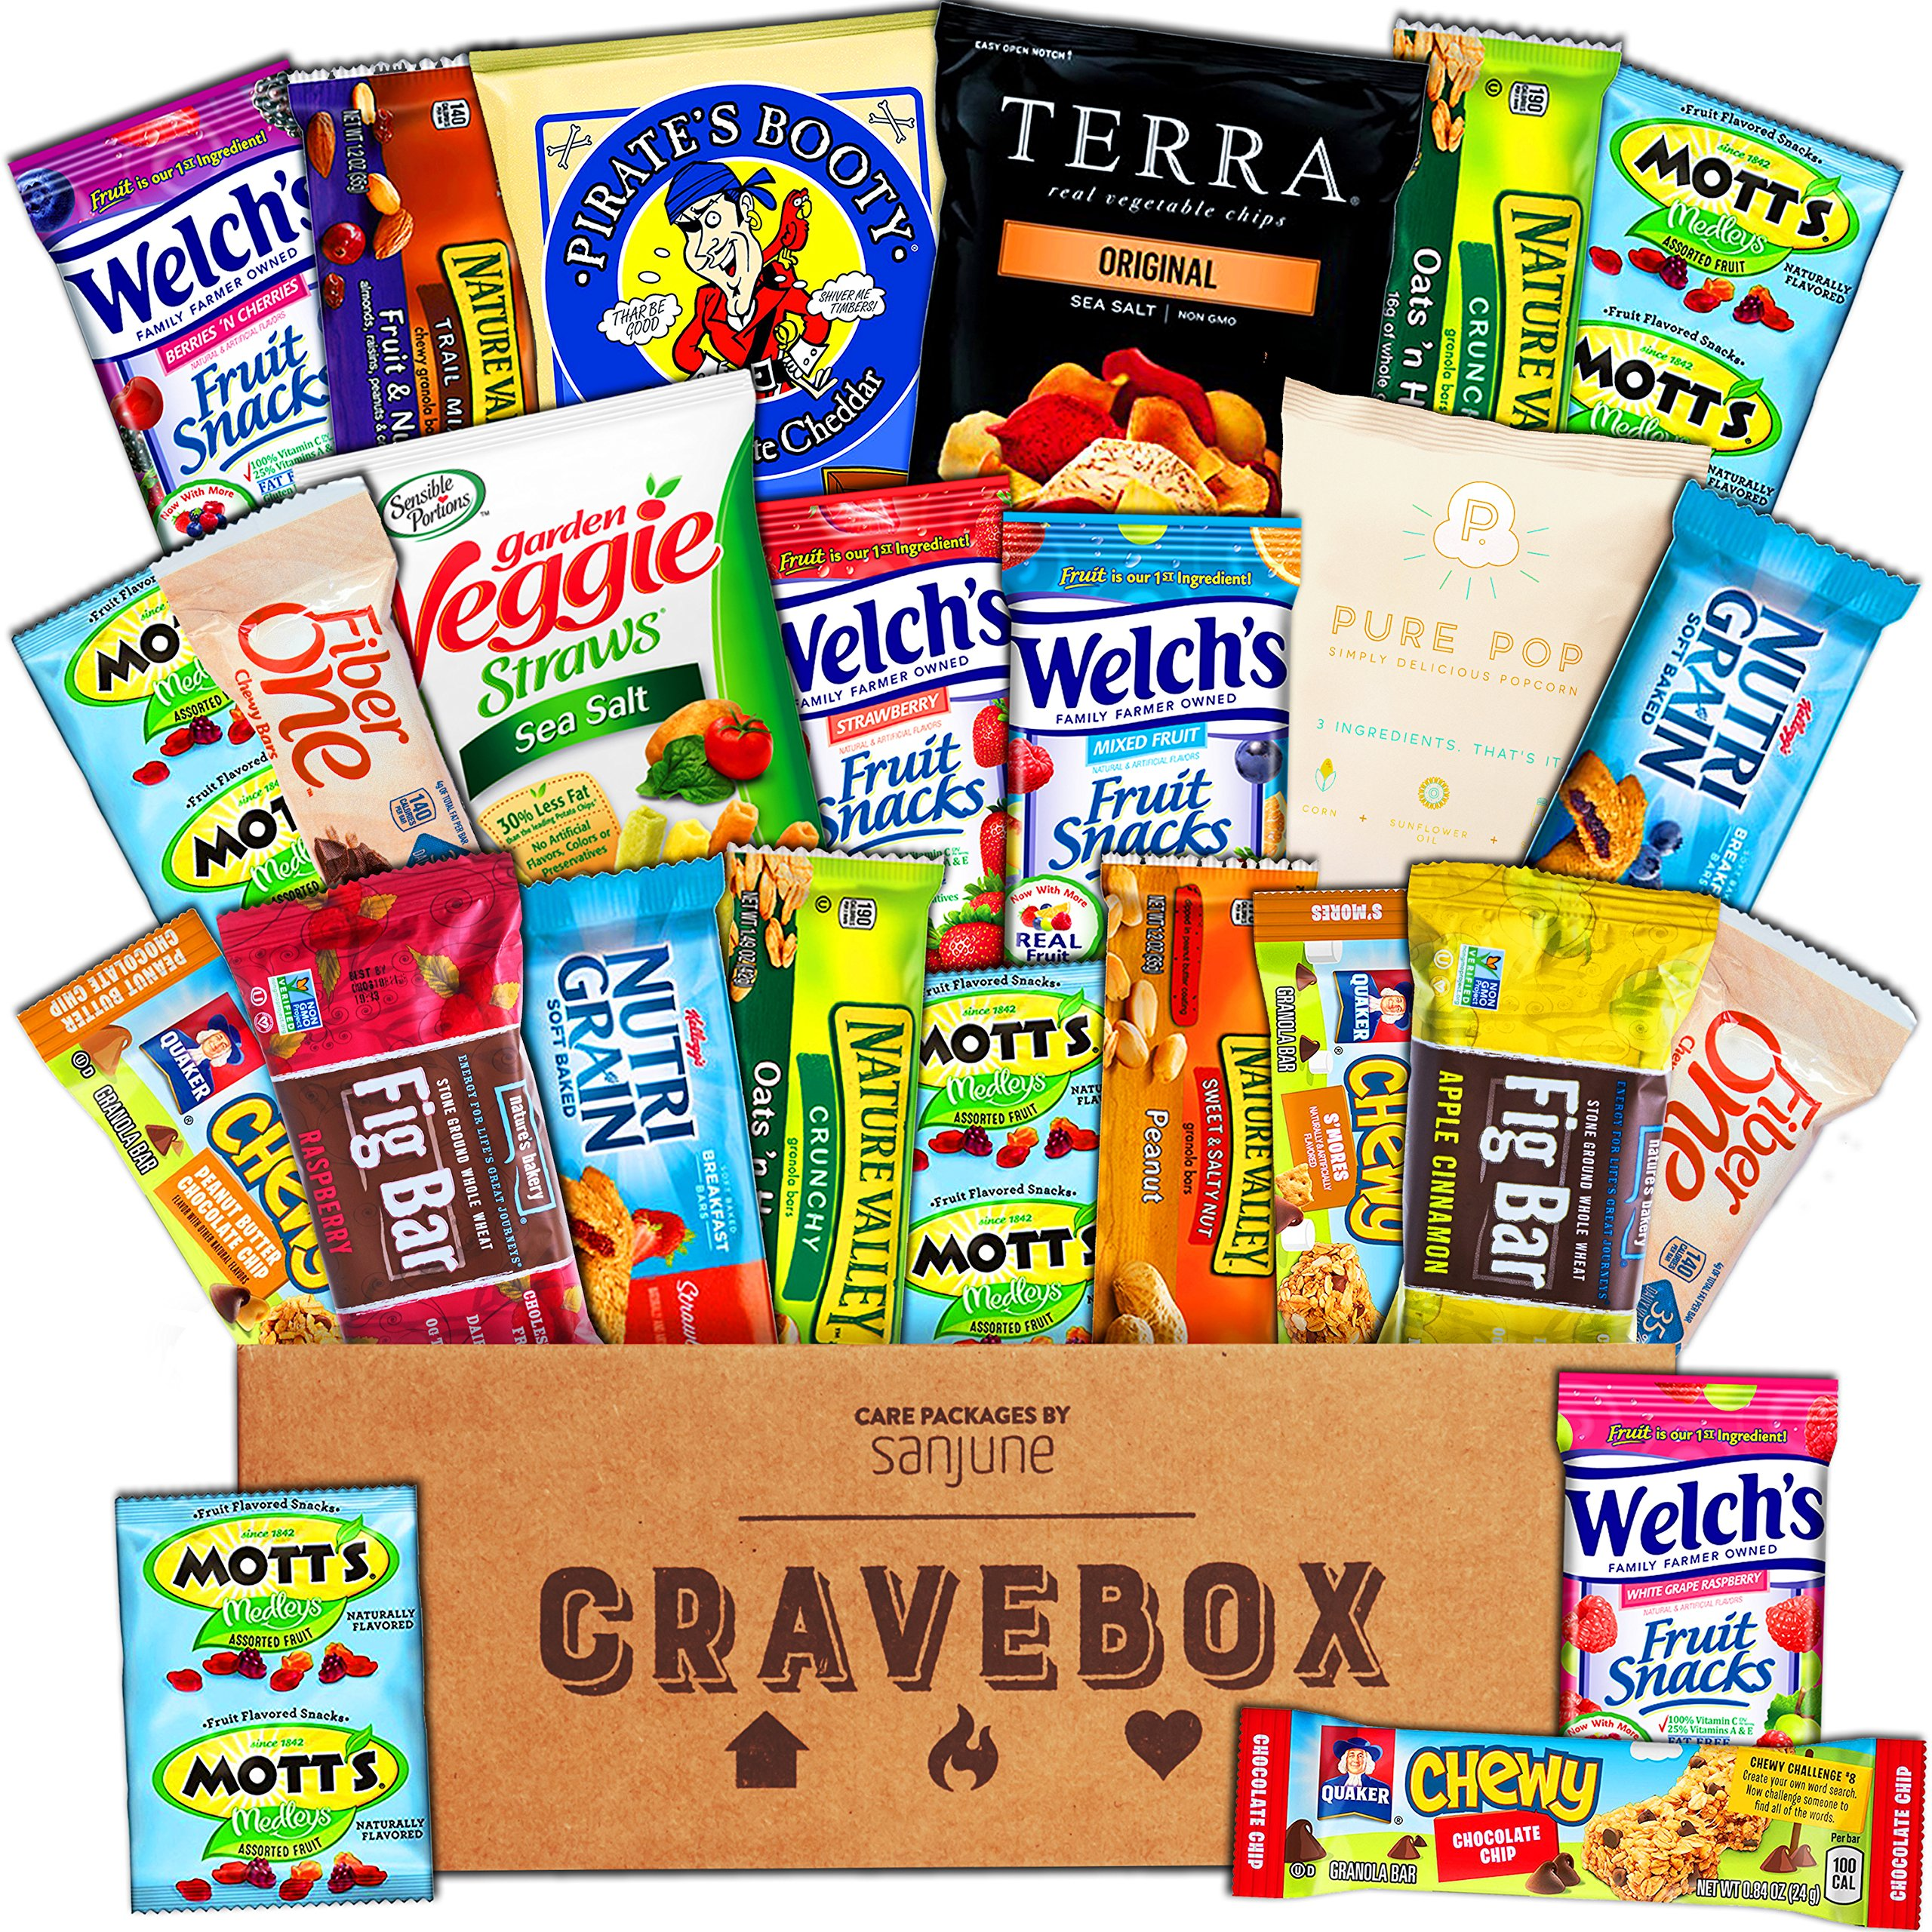 CraveBox - Healthy Snacks Care Package (25 Count) - Variety Assortment with Fruit Snacks, Granola Bars, Popcorn and More, Gift Snack Box for Lunches, Offices or College Students by CraveBox